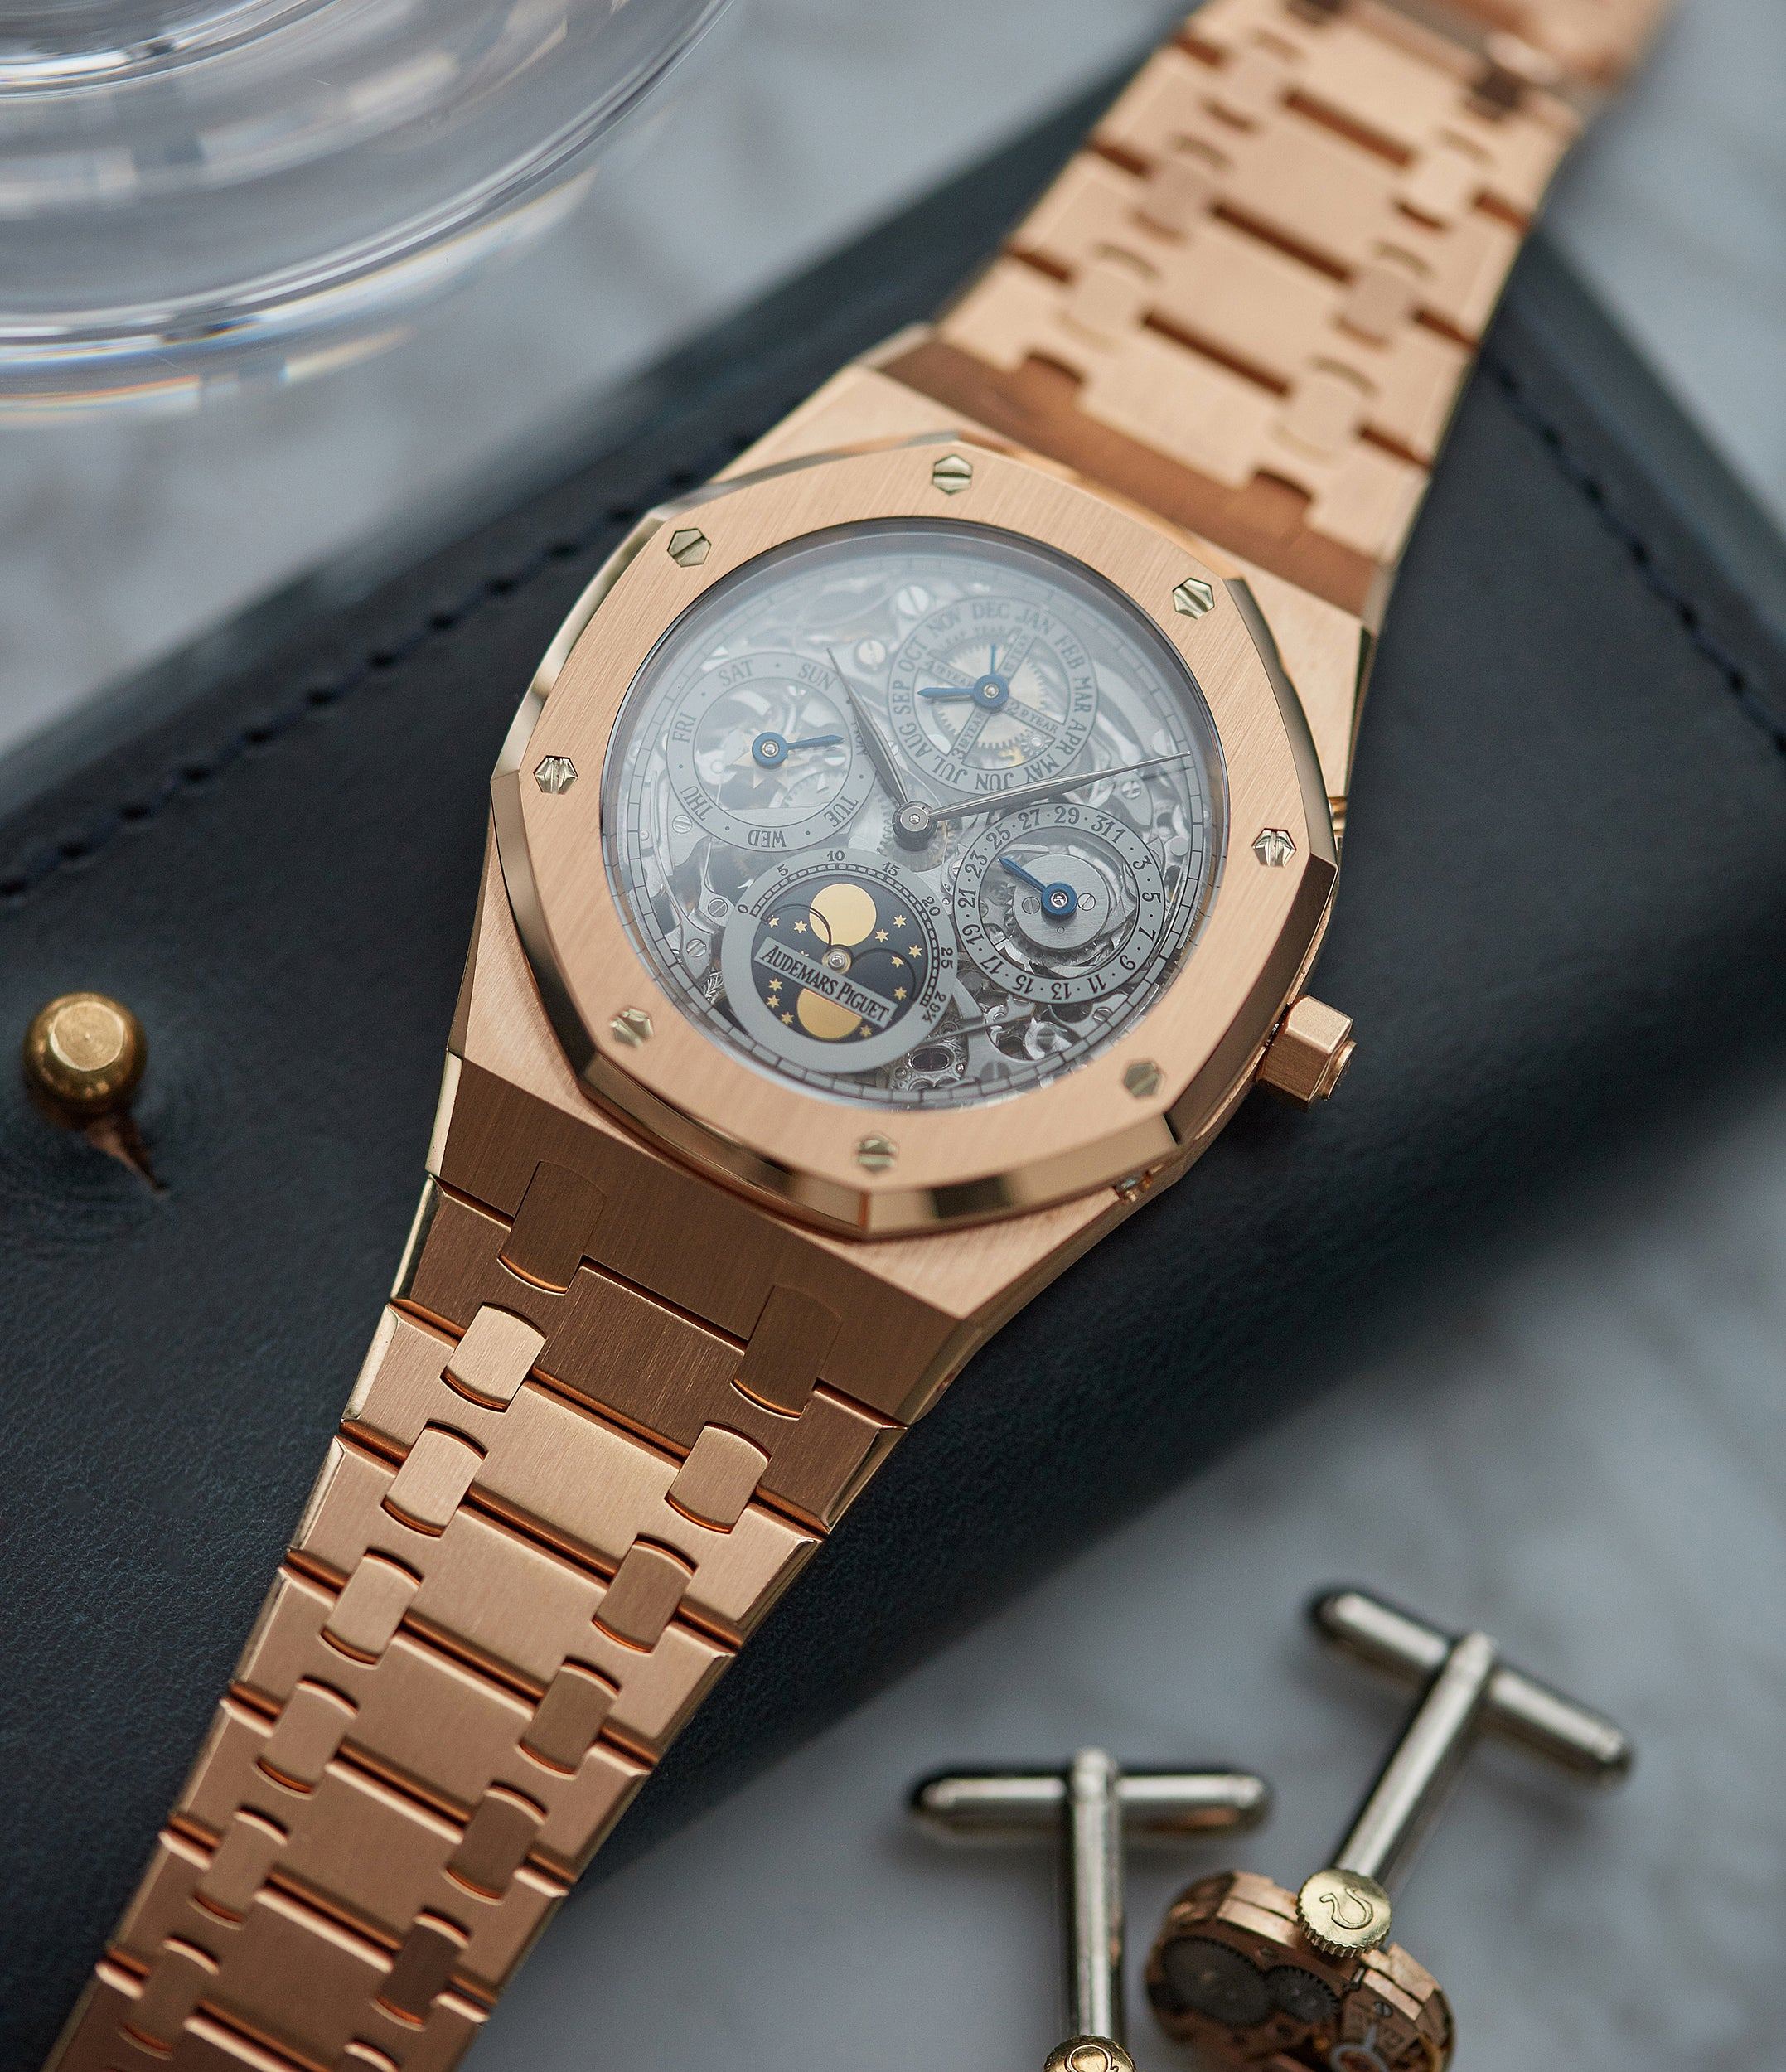 for sale Audemars Piguet Royal Oak 25829OR Quantieme Perpetual Calendar rose gold skeletonised pre-owned sport watch for sale online at A Collected Man London UK specialist of rare watches